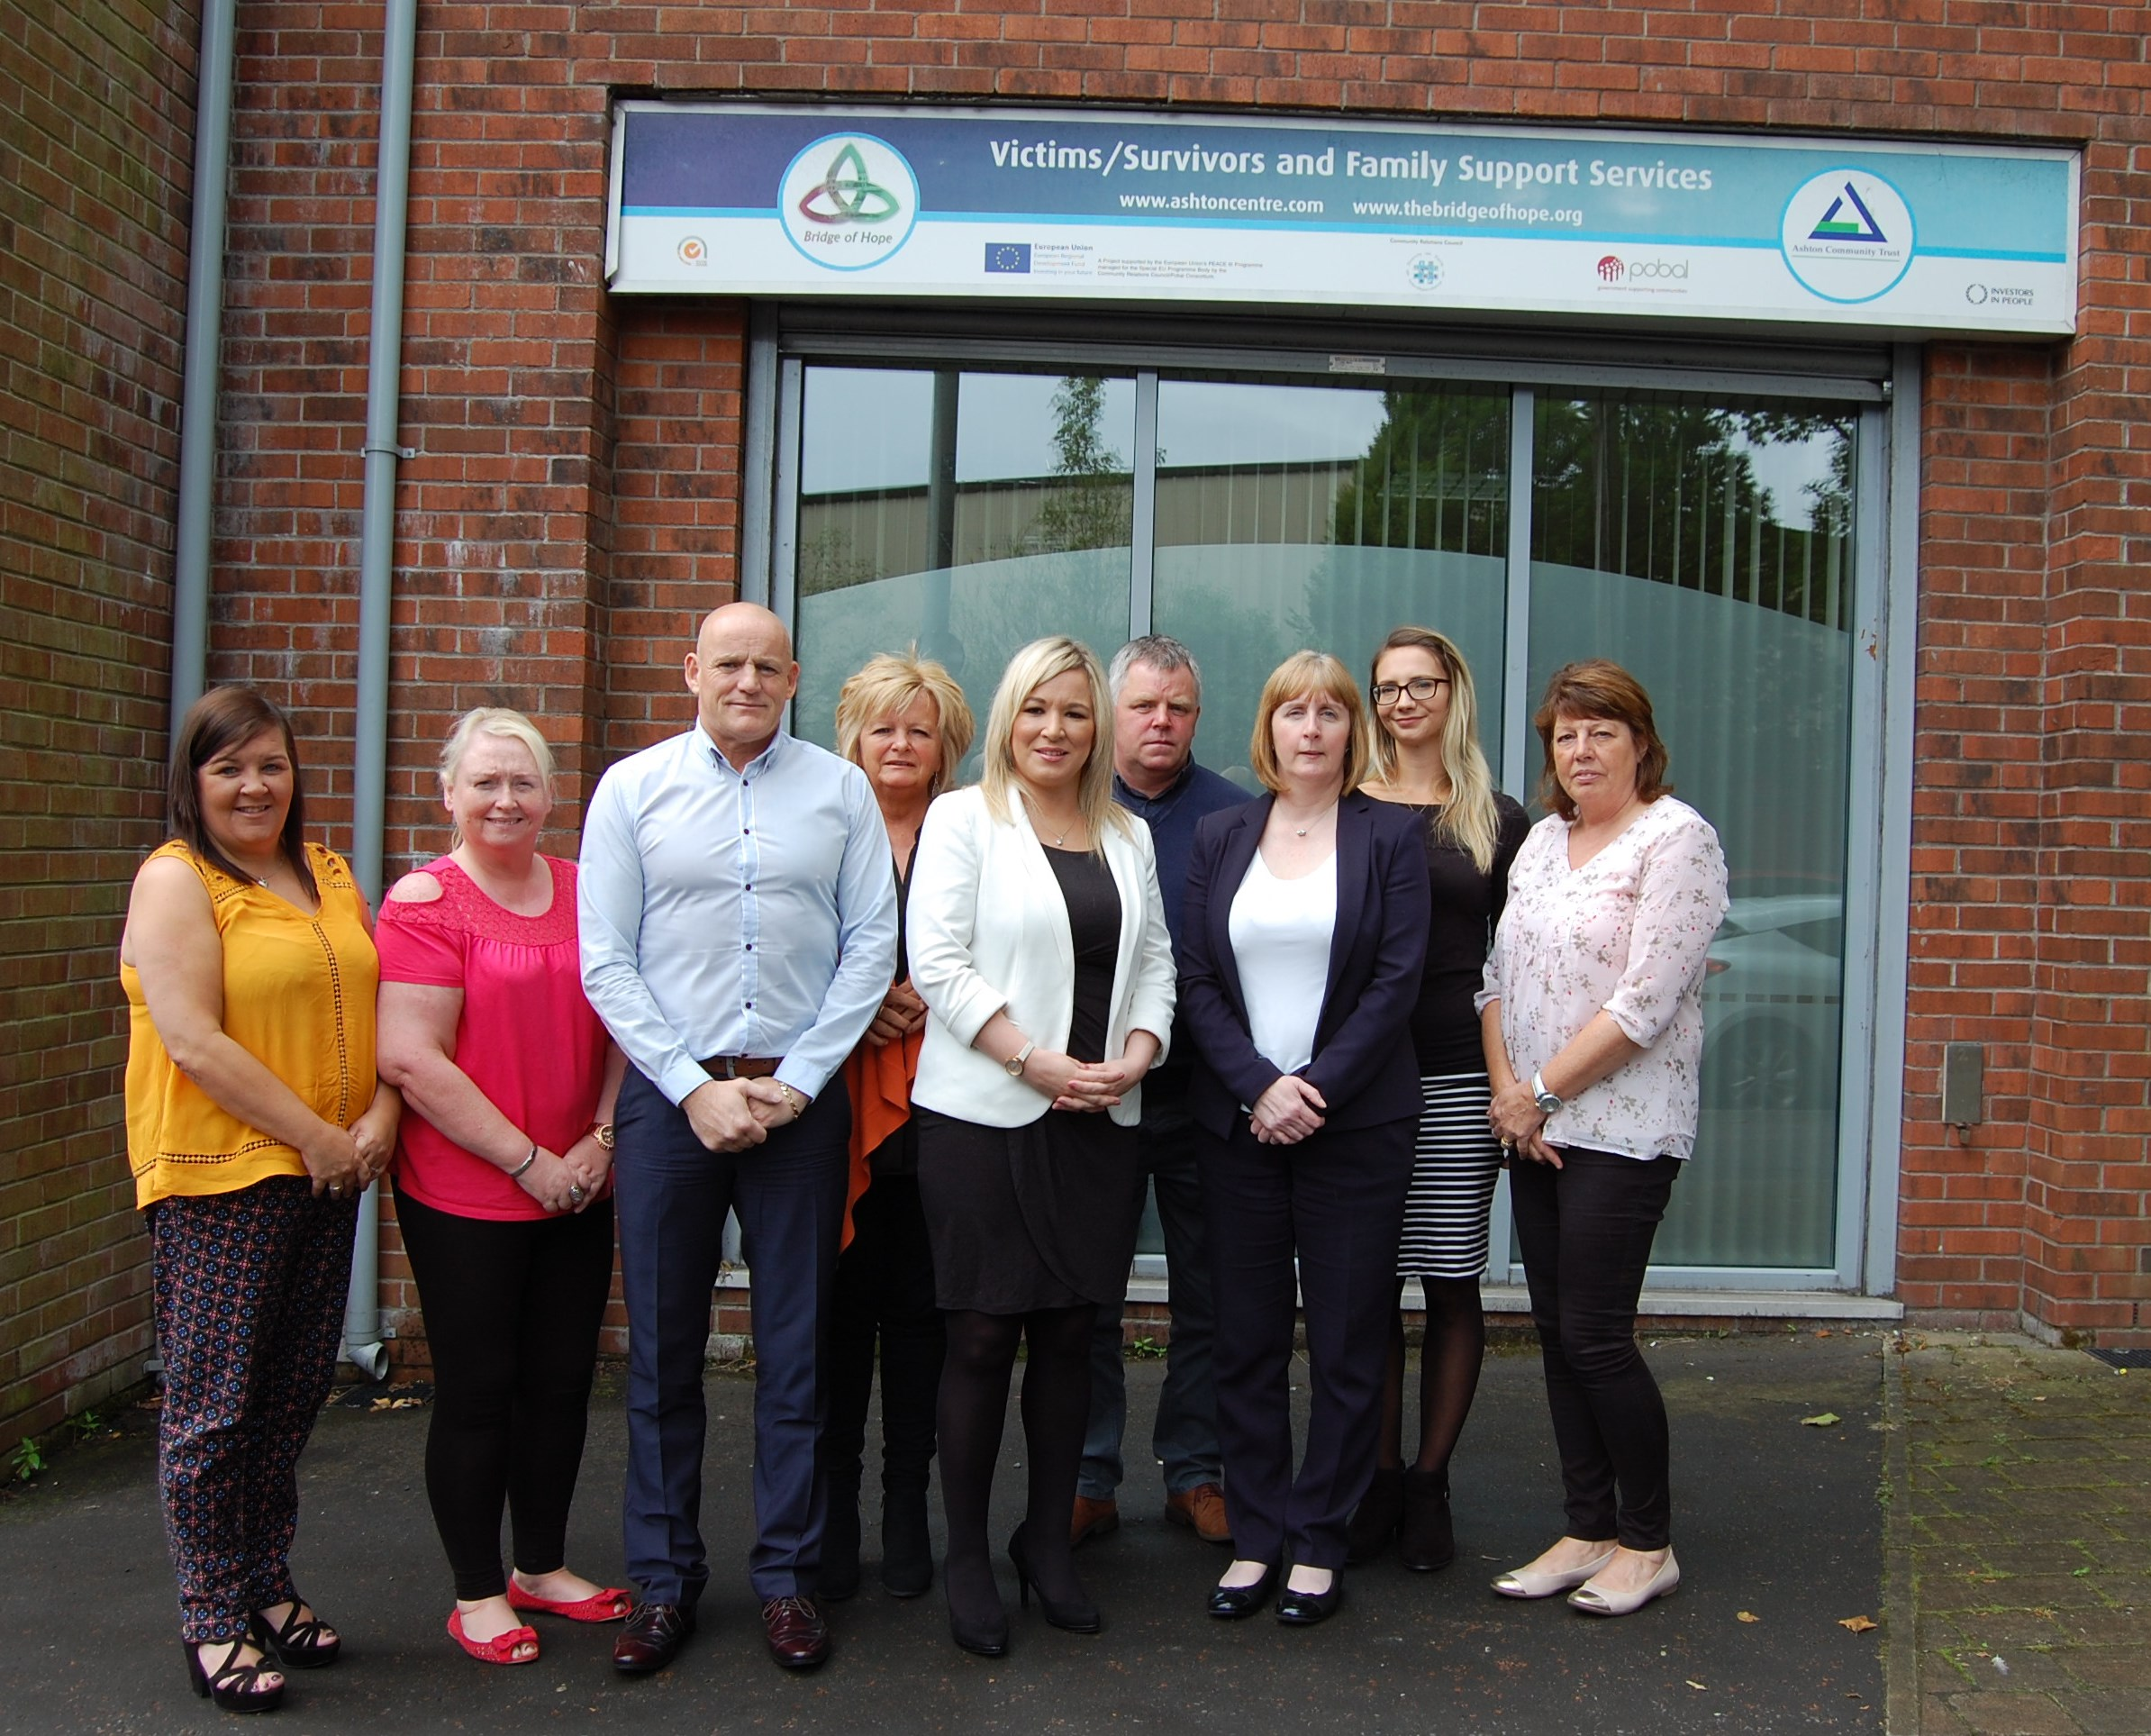 Health Minister meets Belfast community groups to discuss suicide prevention